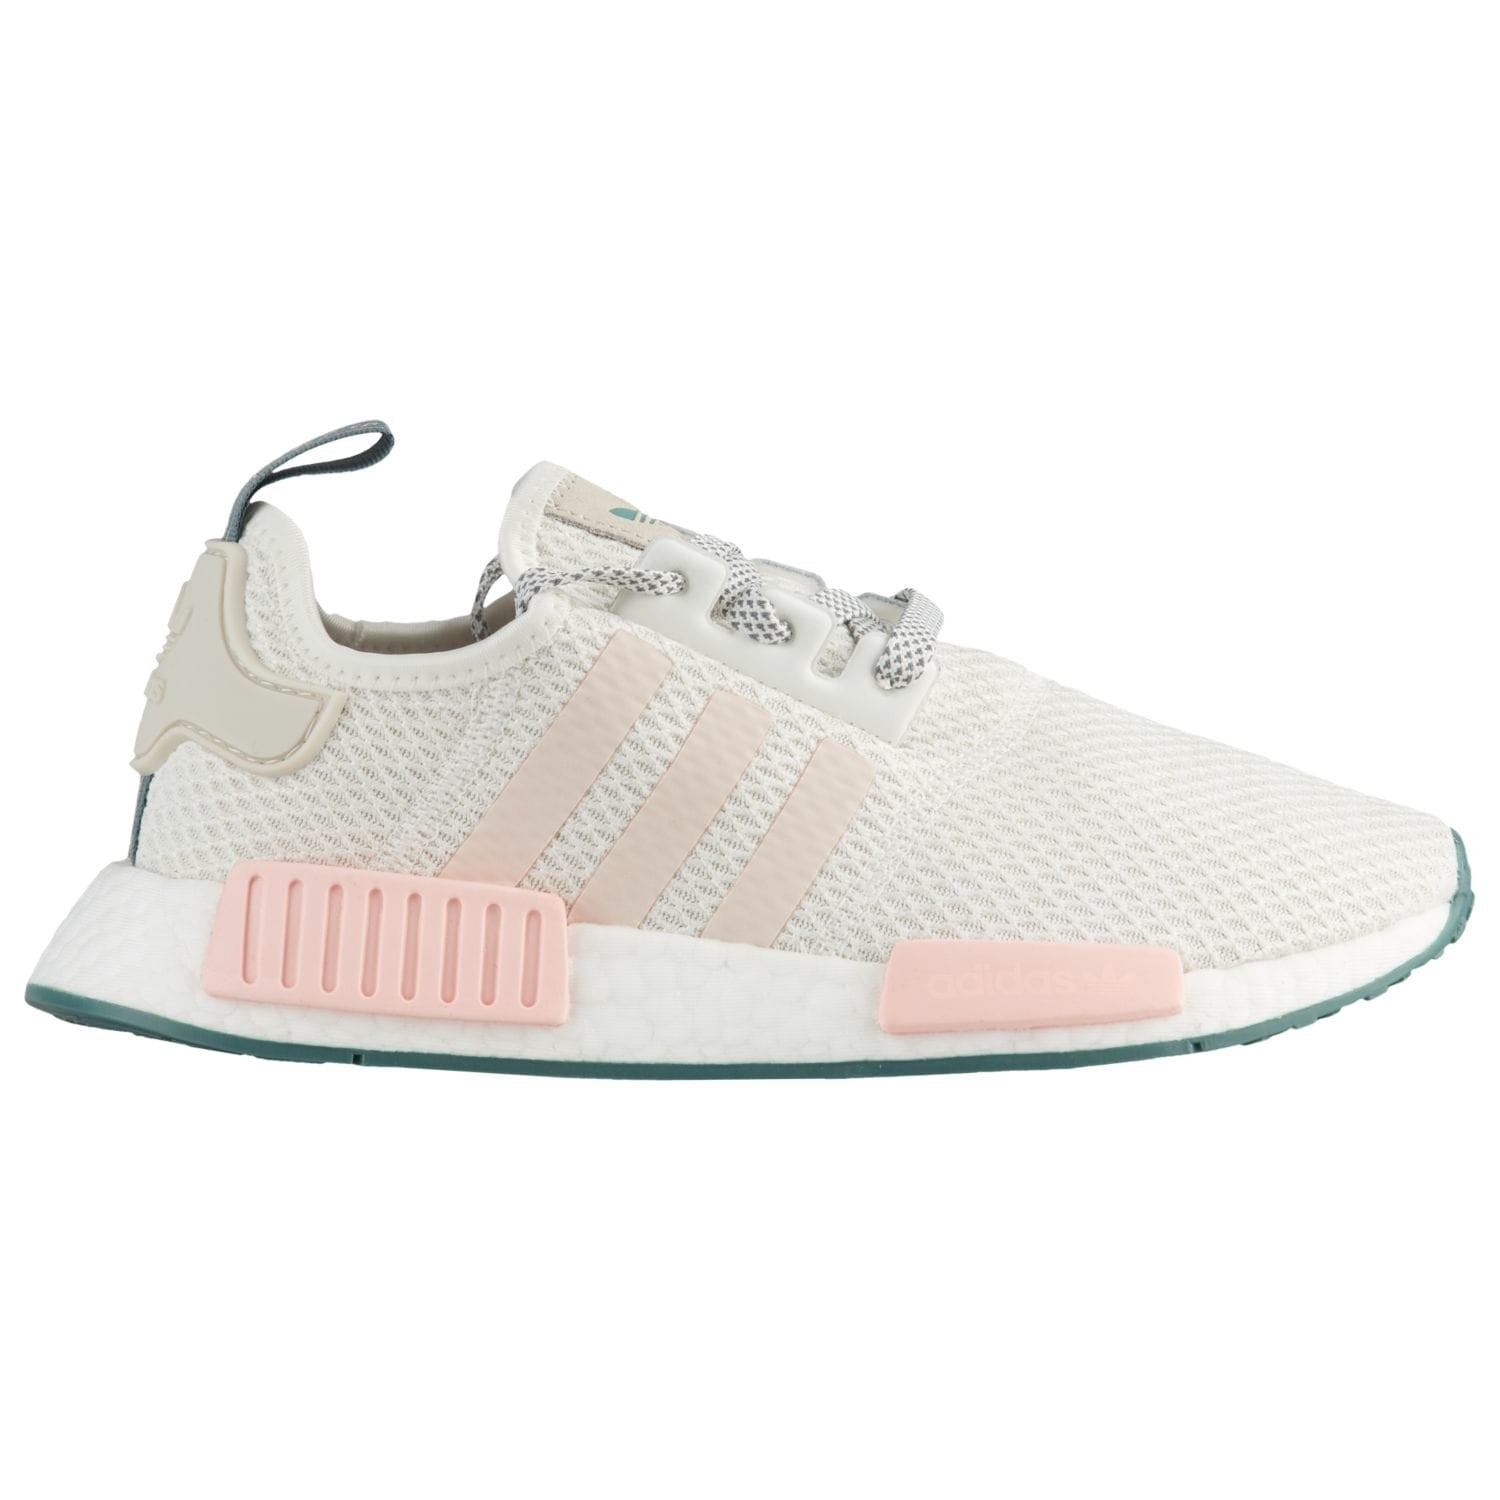 low priced af13f a03e7 adidas Originals NMD R1 Skor D97232 - Dam